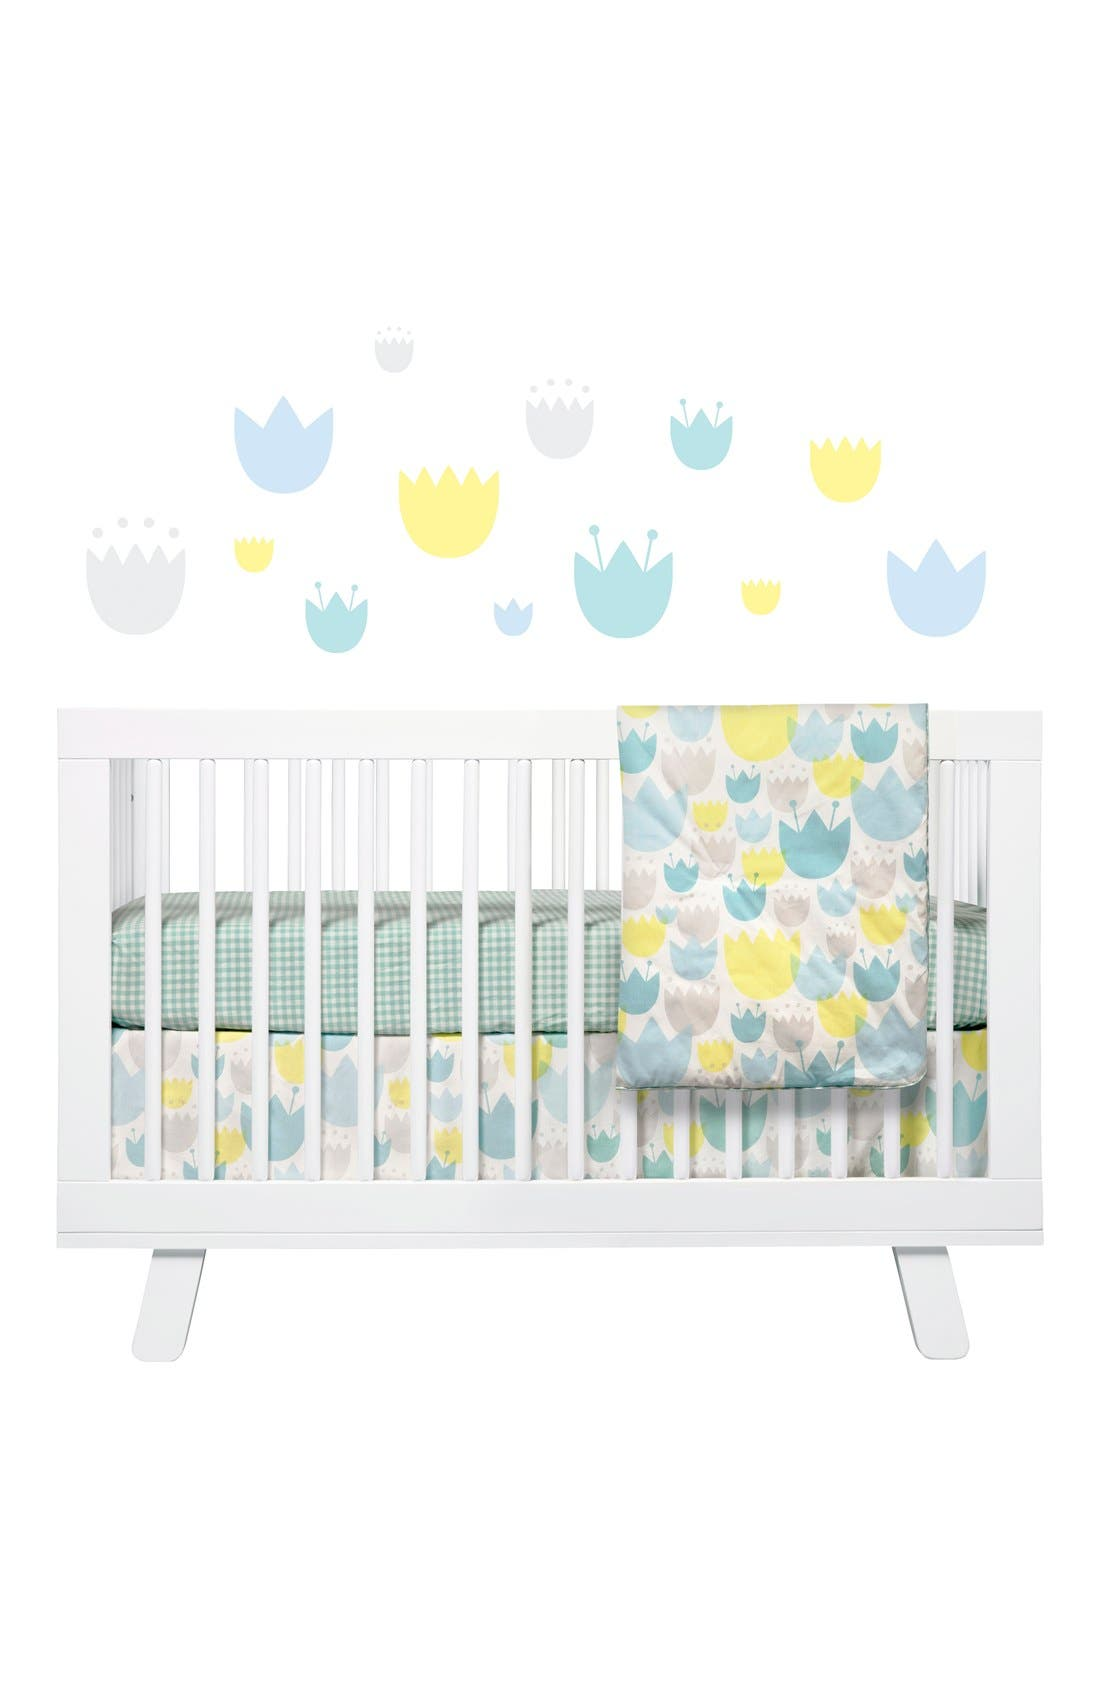 'Garden' Crib Sheet, Crib Skirt, Changing Pad Cover, Play Blanket & Wall Decals,                         Main,                         color, BLUE